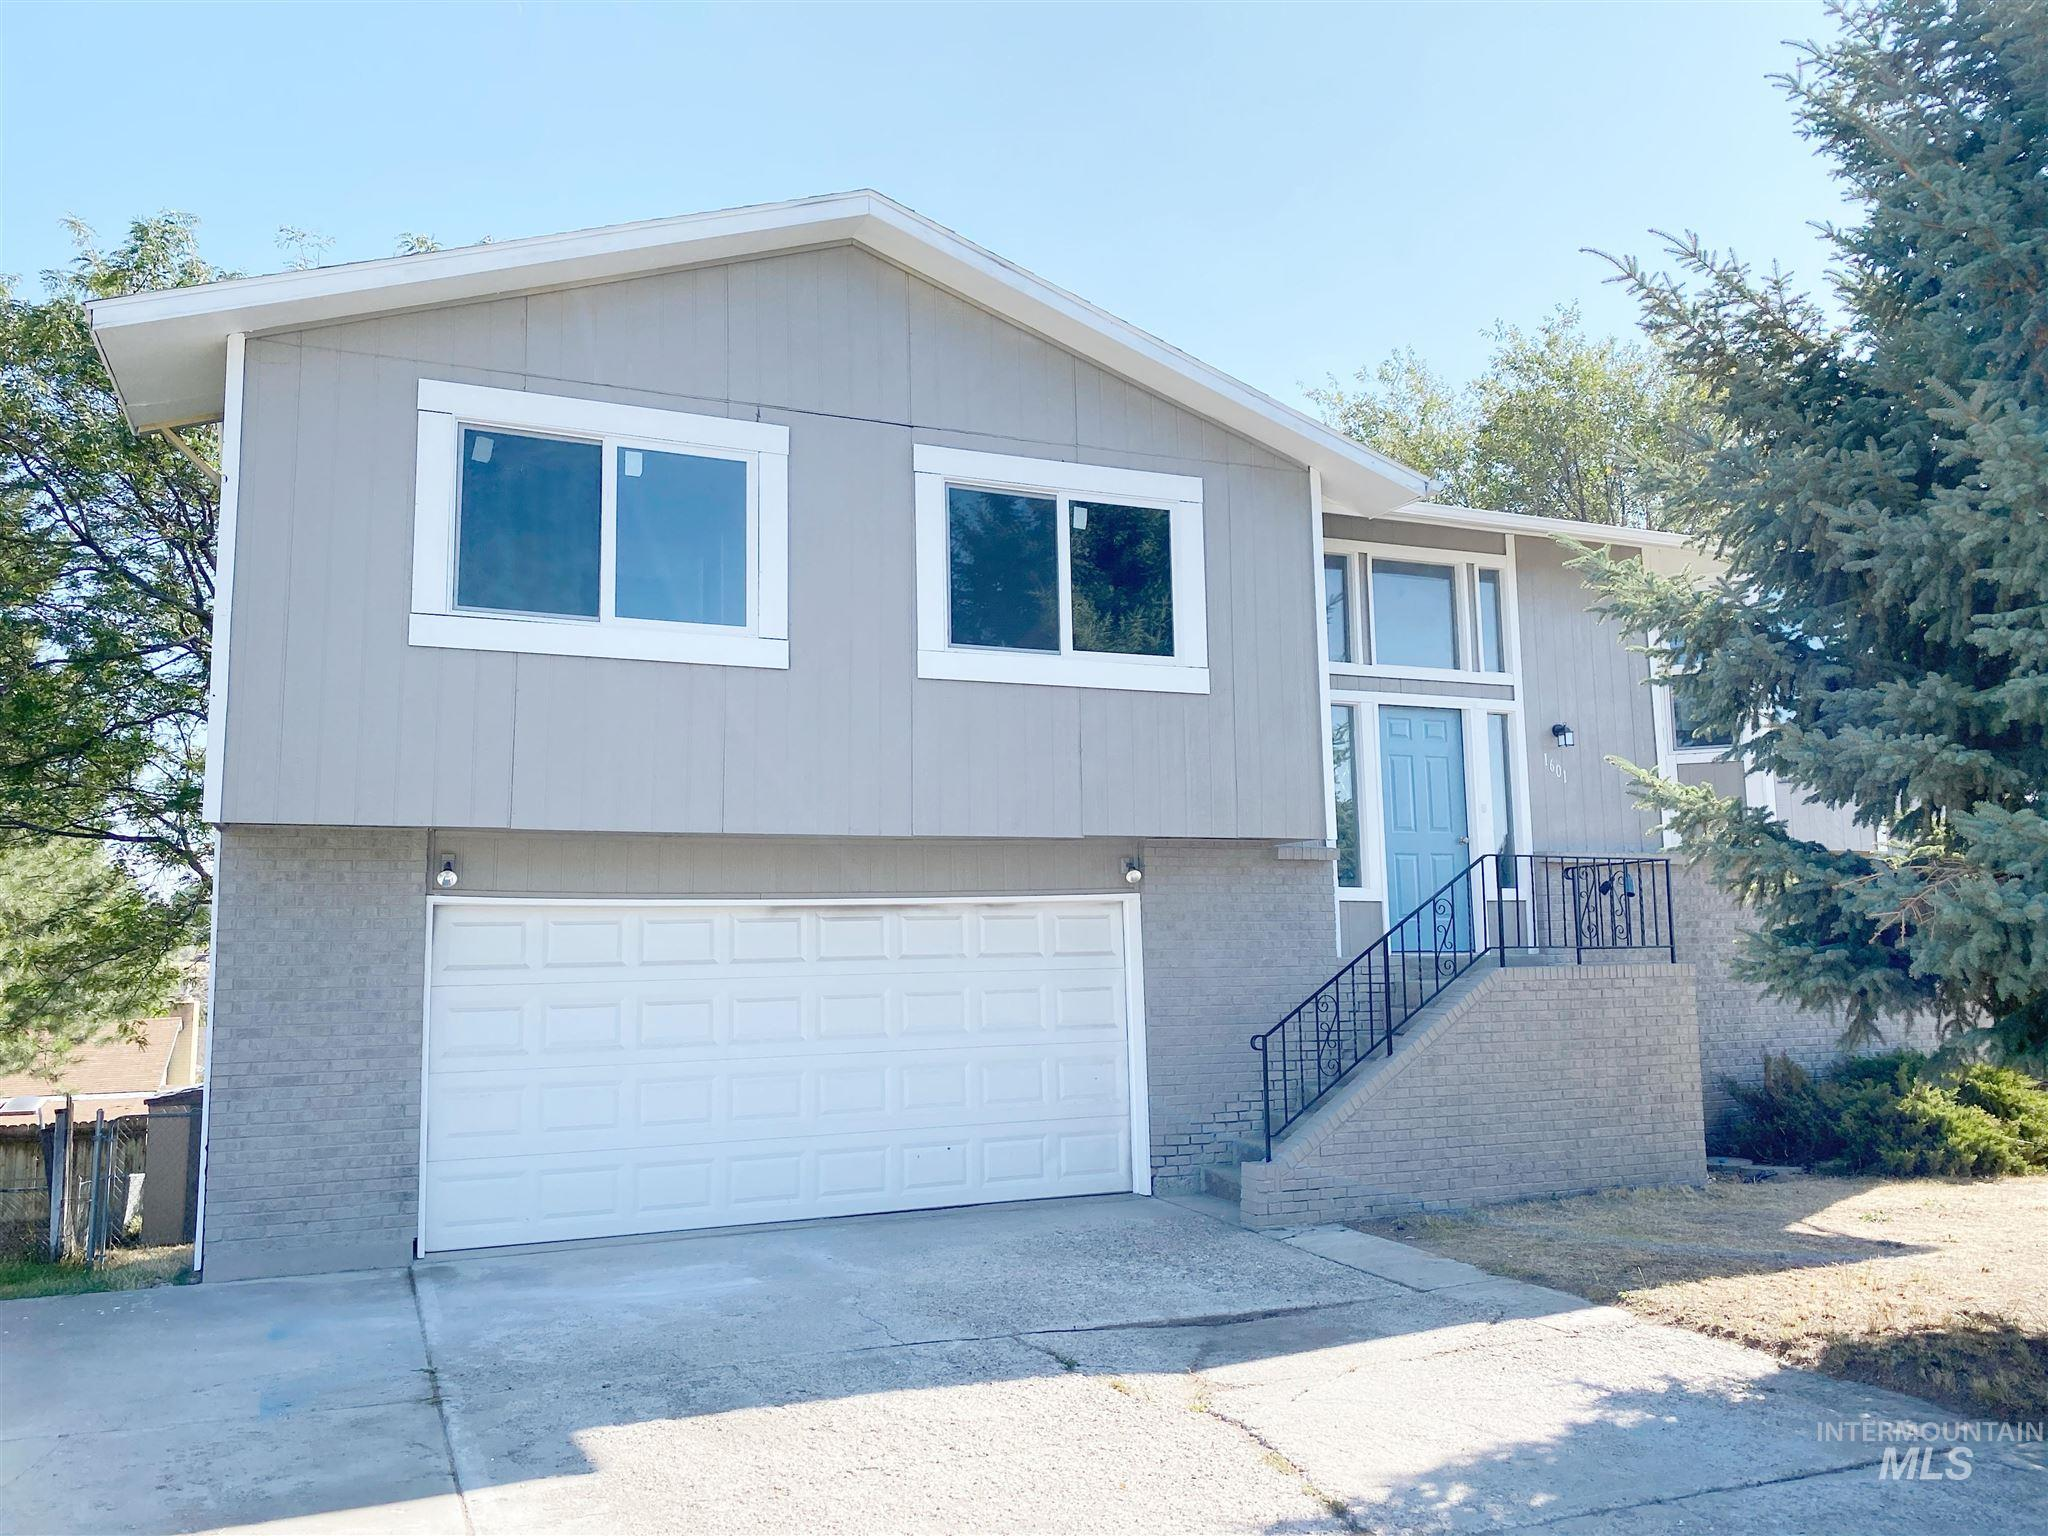 1601 S Von Elm St, Pocatello, Idaho 83201, 4 Bedrooms, 3 Bathrooms, Residential For Sale, Price $240,000, 98781564